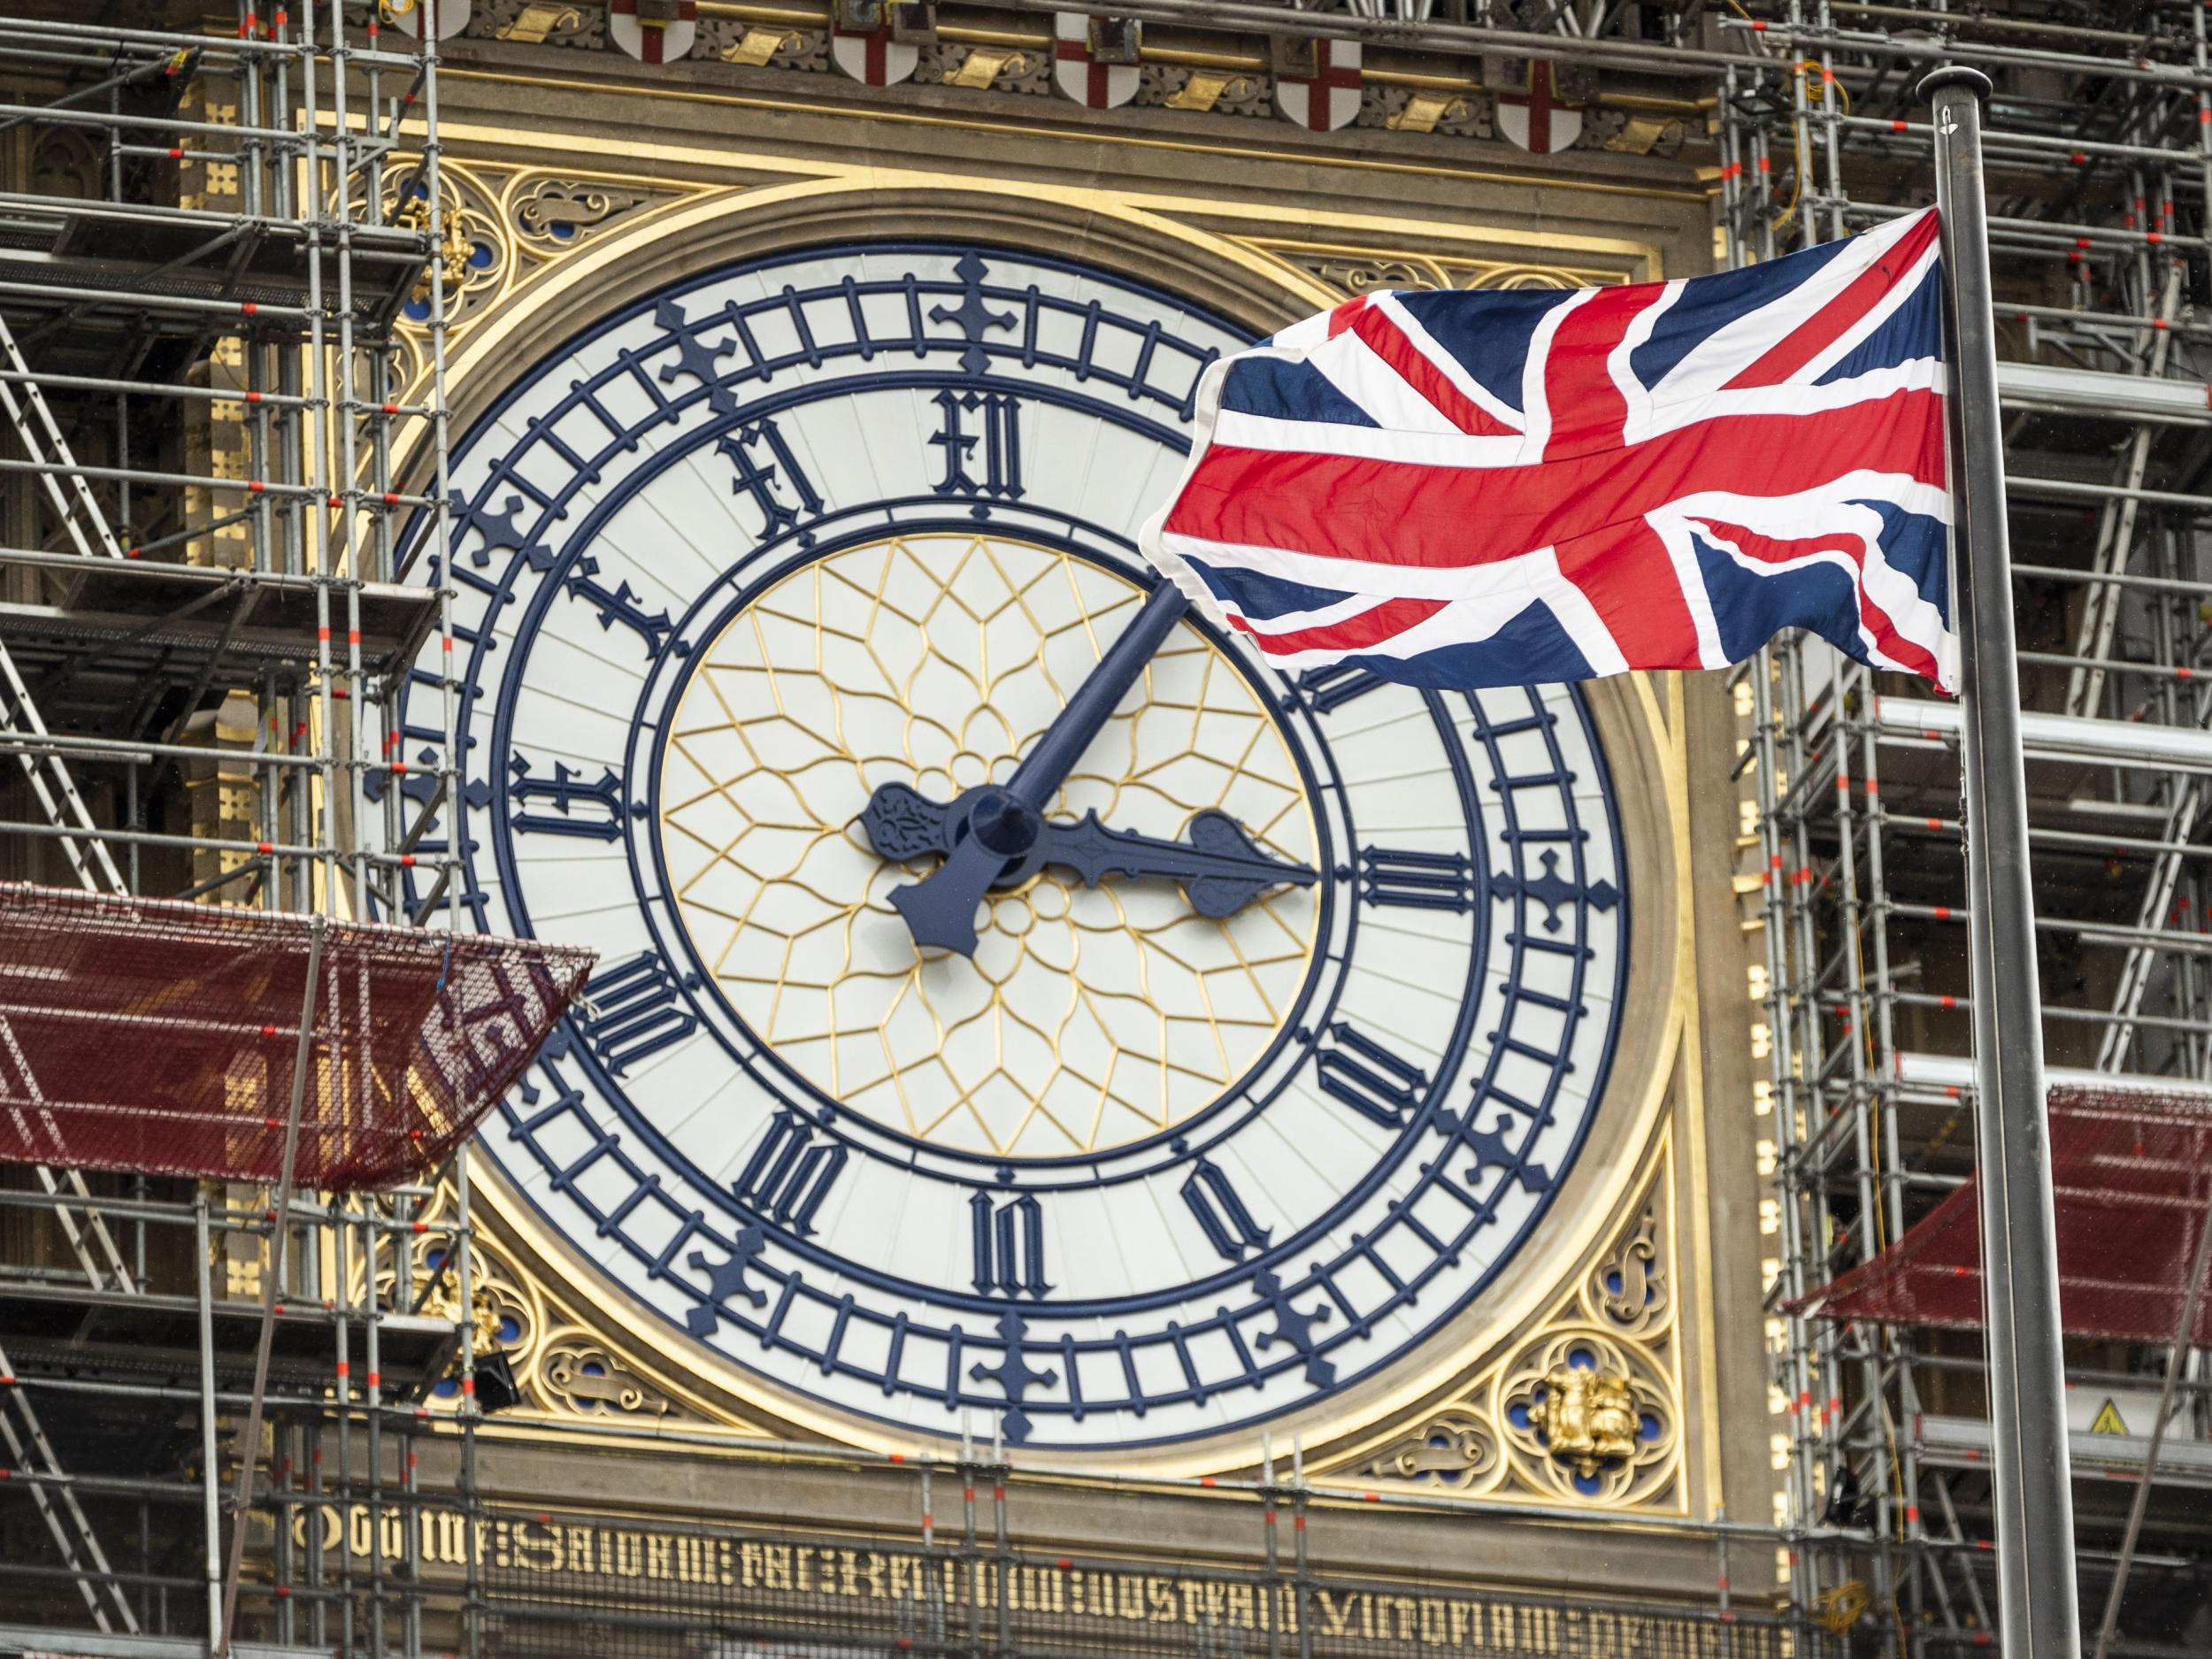 Crowdfunding pages for Big Ben to ring on Brexit Day raise just £500 of £500,000 needed